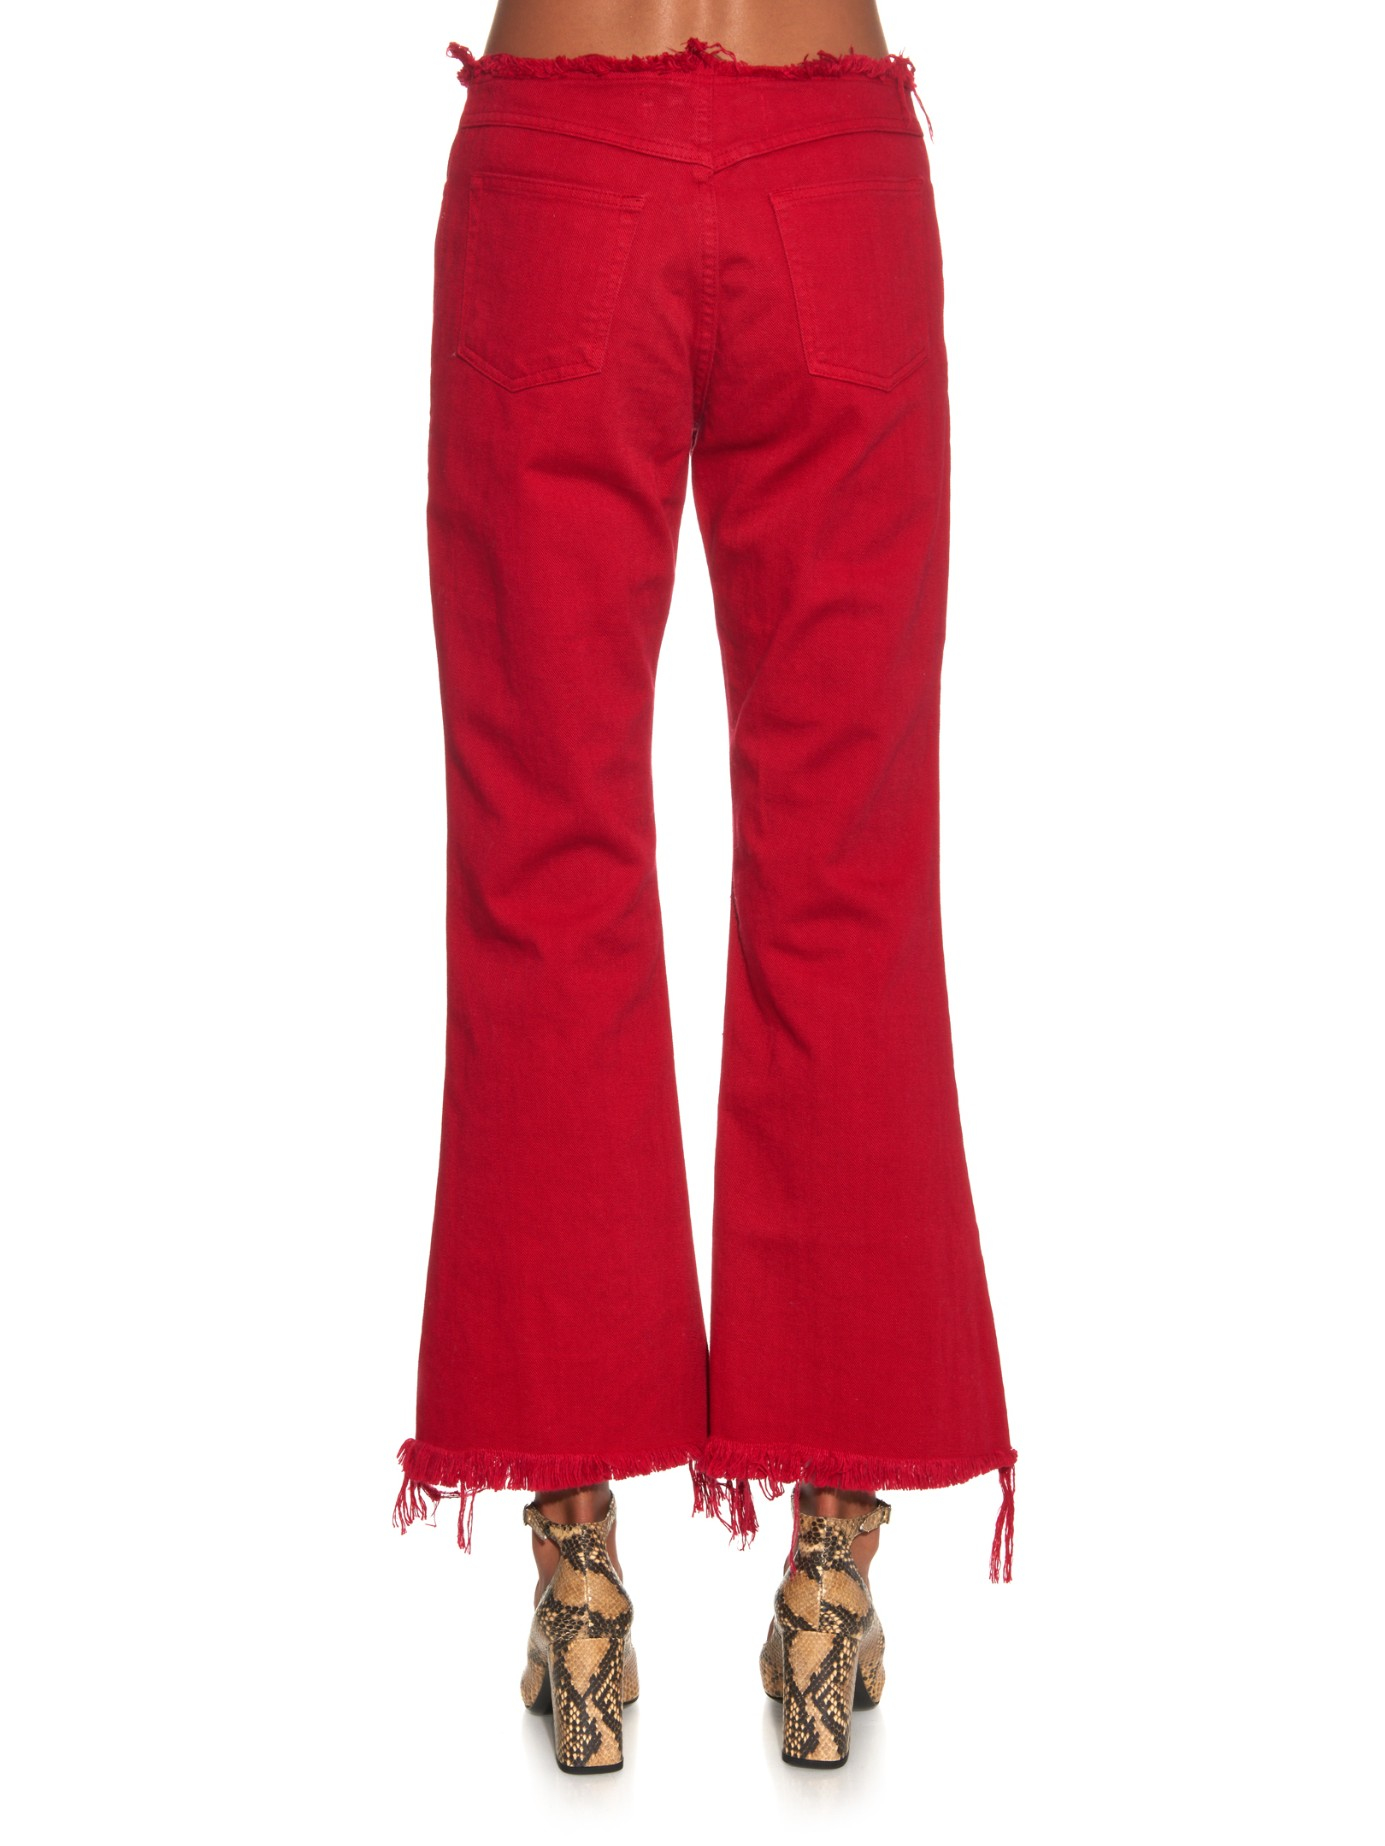 Marques'almeida Capri Frayed-edge Flared Jeans in Red | Lyst